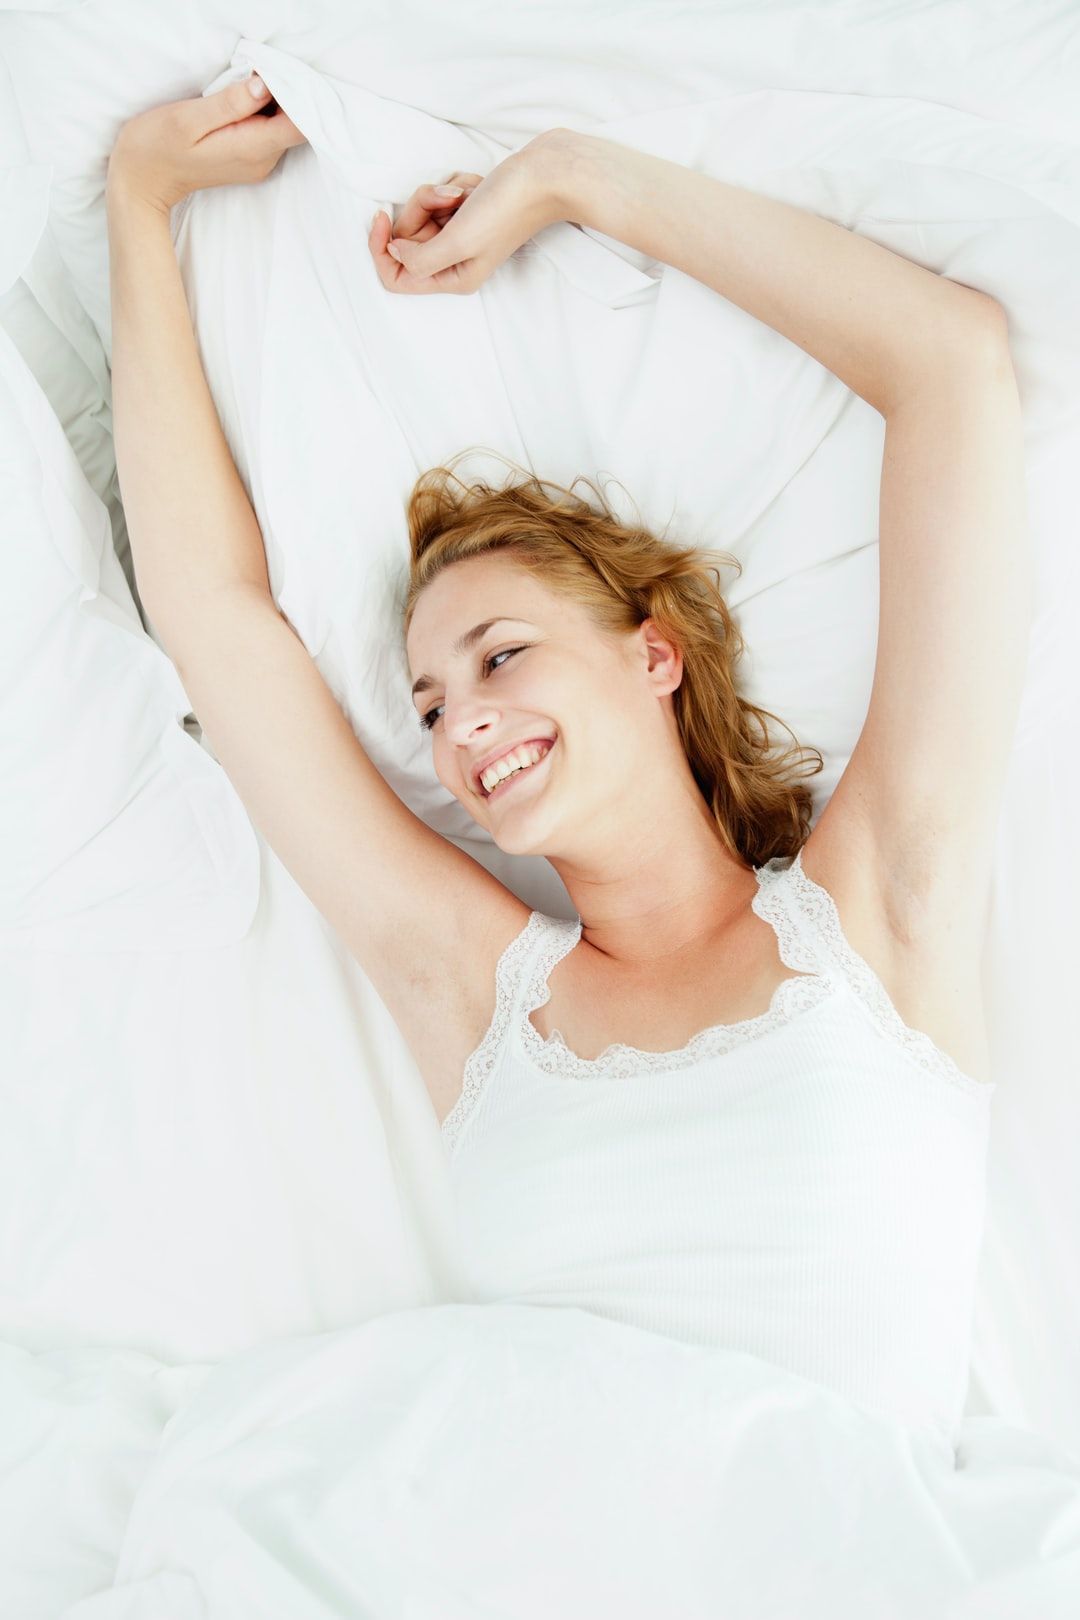 Waking With a Smile: How a Deeper Sleep Can Improve Your Skin